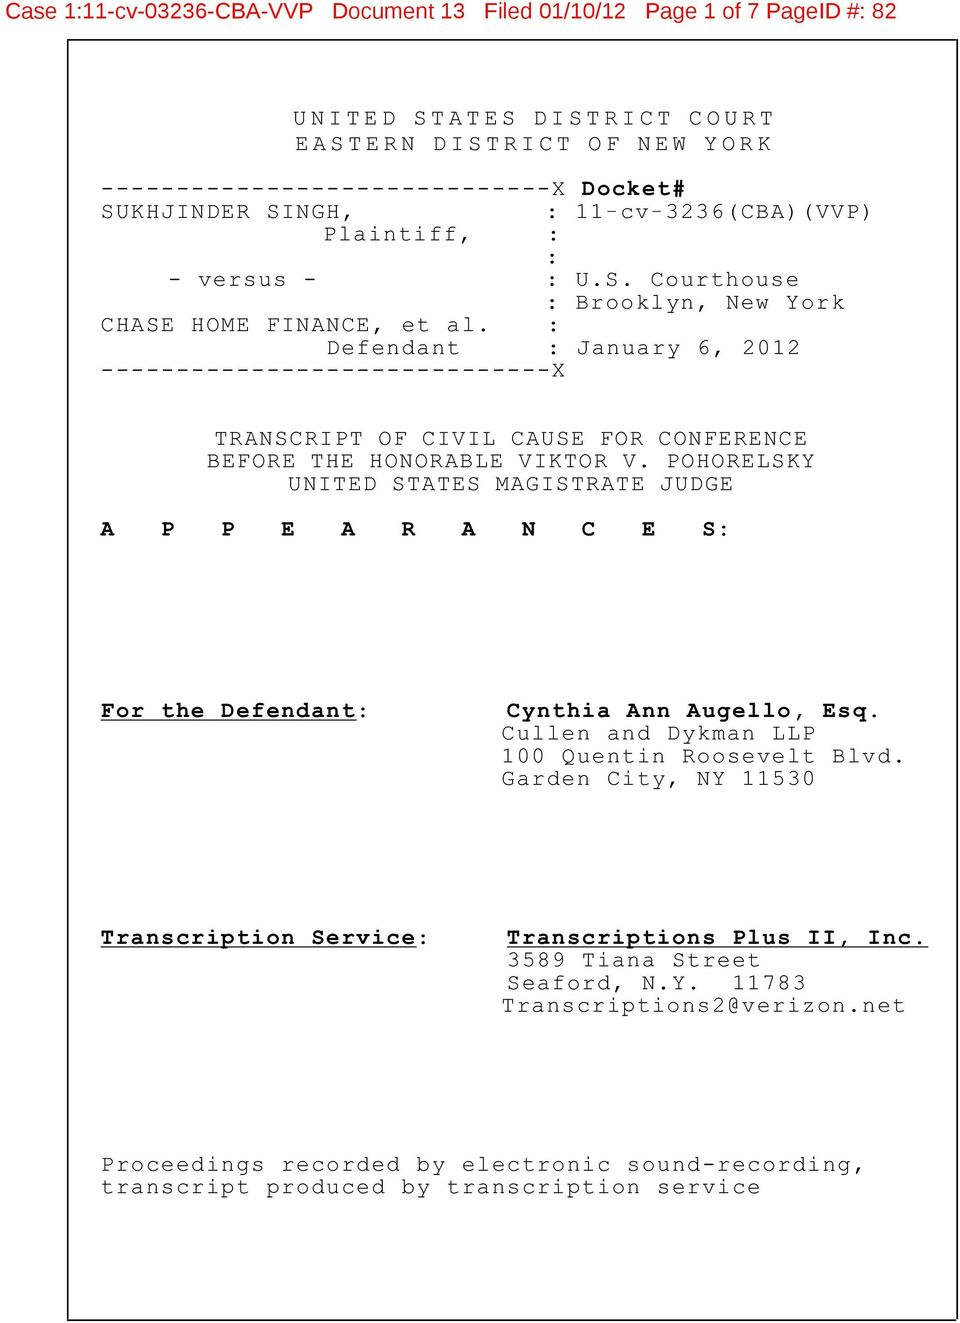 : Defendant : January 6, 2012 ------------------------------X TRANSCRIPT OF CIVIL CAUSE FOR CONFERENCE BEFORE THE HONORABLE VIKTOR V.